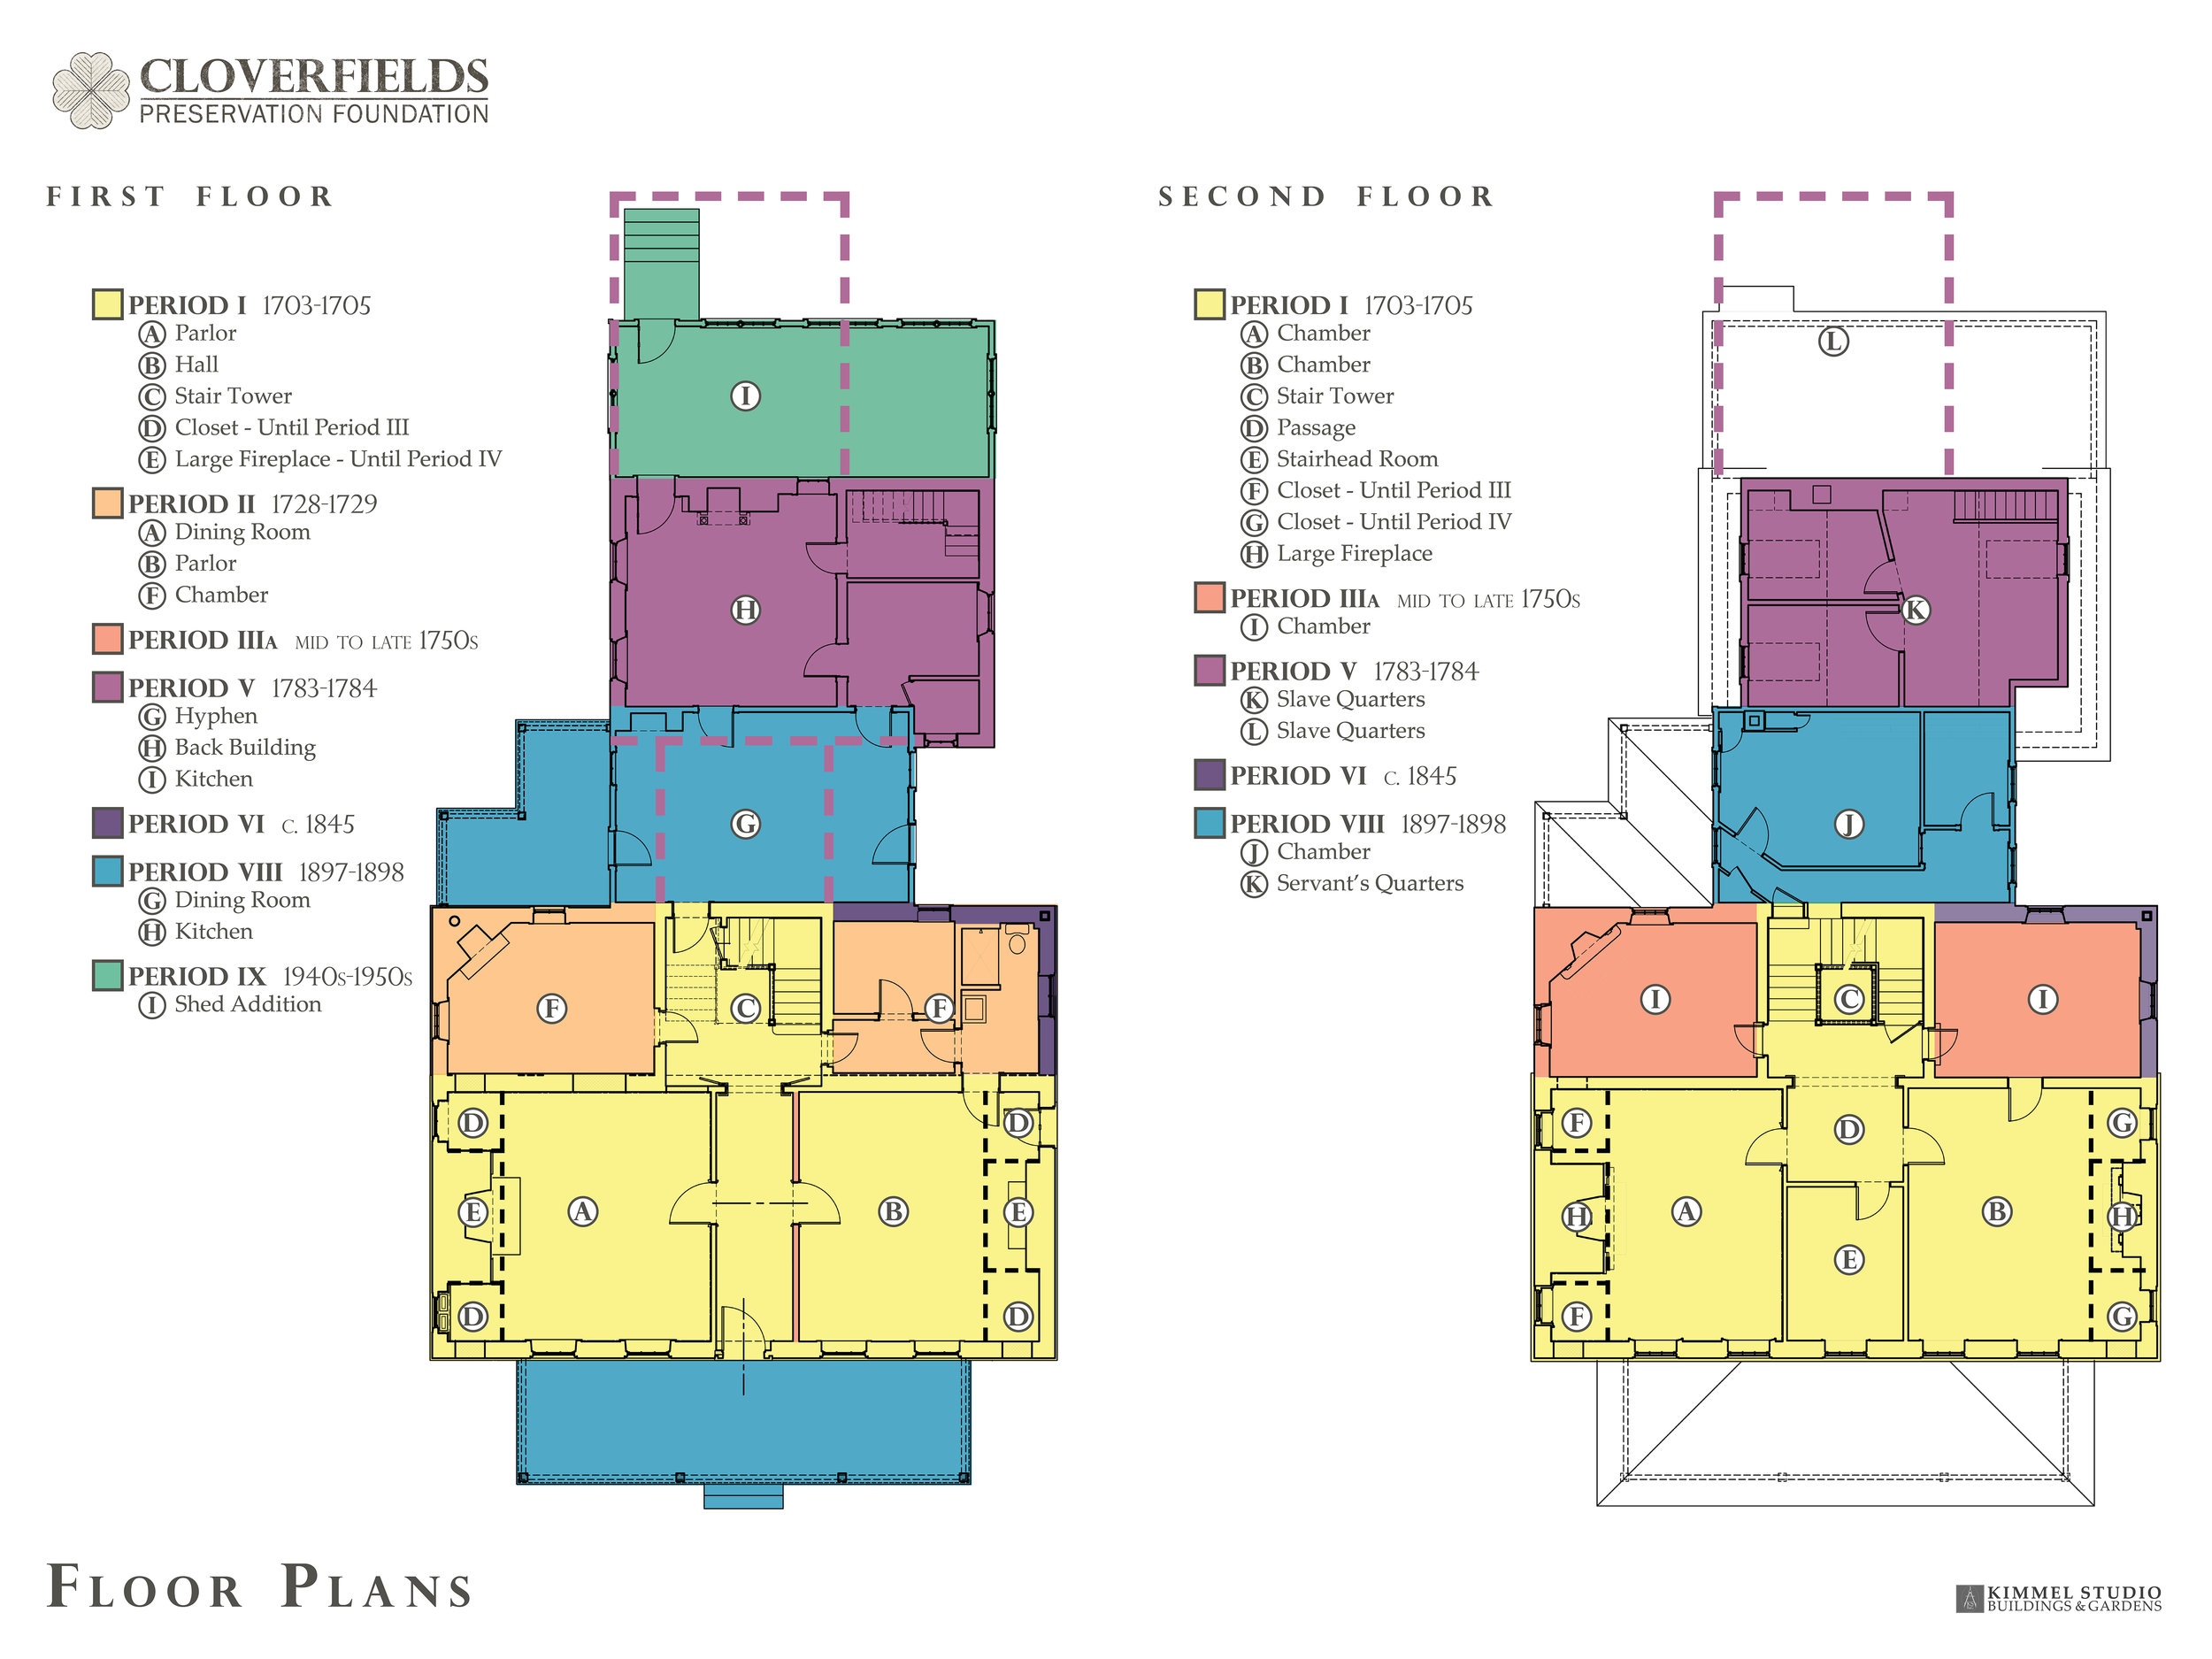 The floor plans show the evolution of the house during the different periods from 1705 to present day.